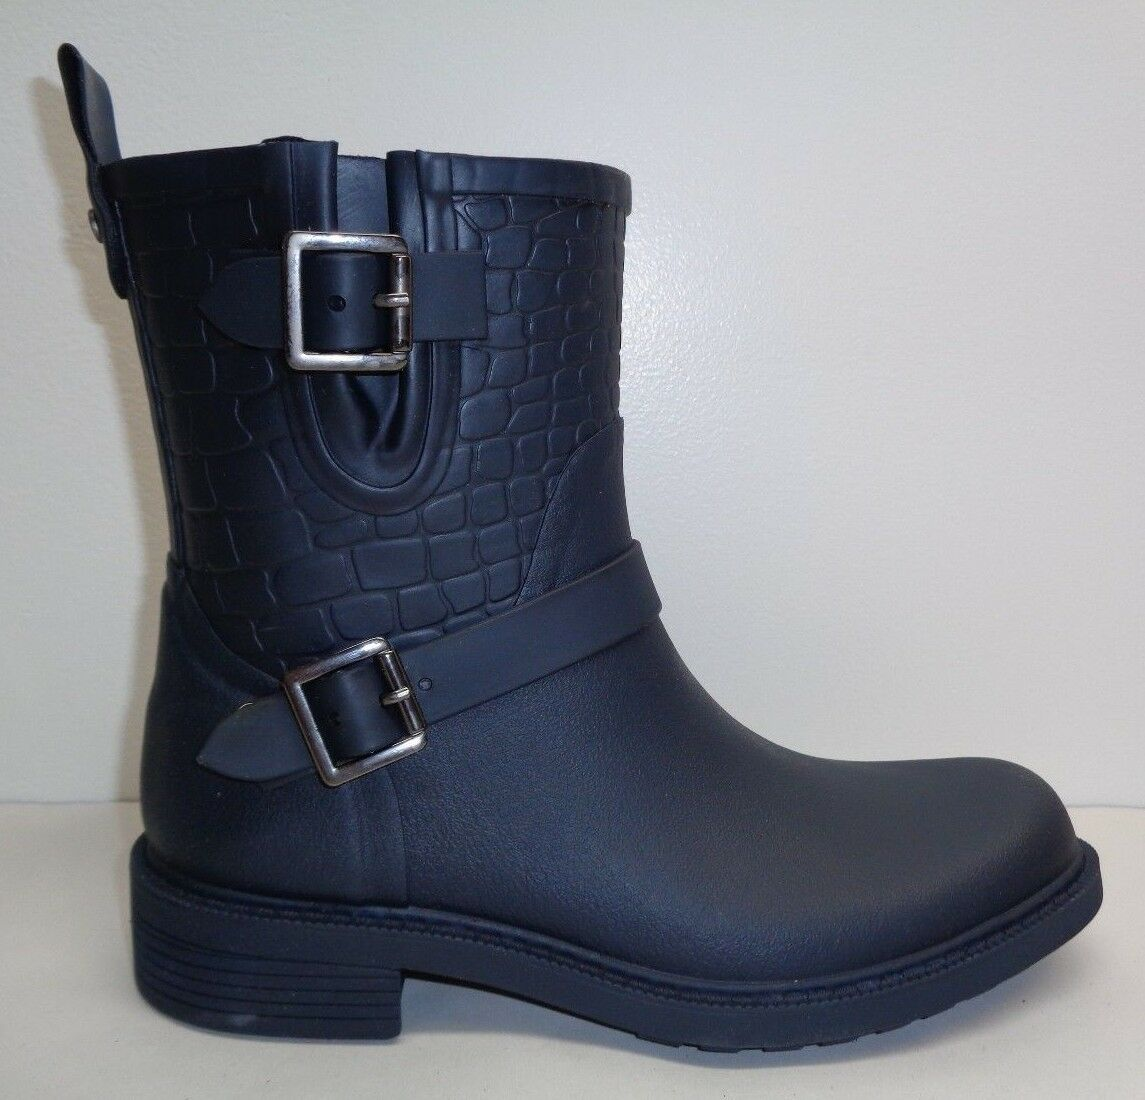 Sam Edelman Size 9 M KEIGAN Navy Rubber Rain Ankle Boots New Womens Shoes